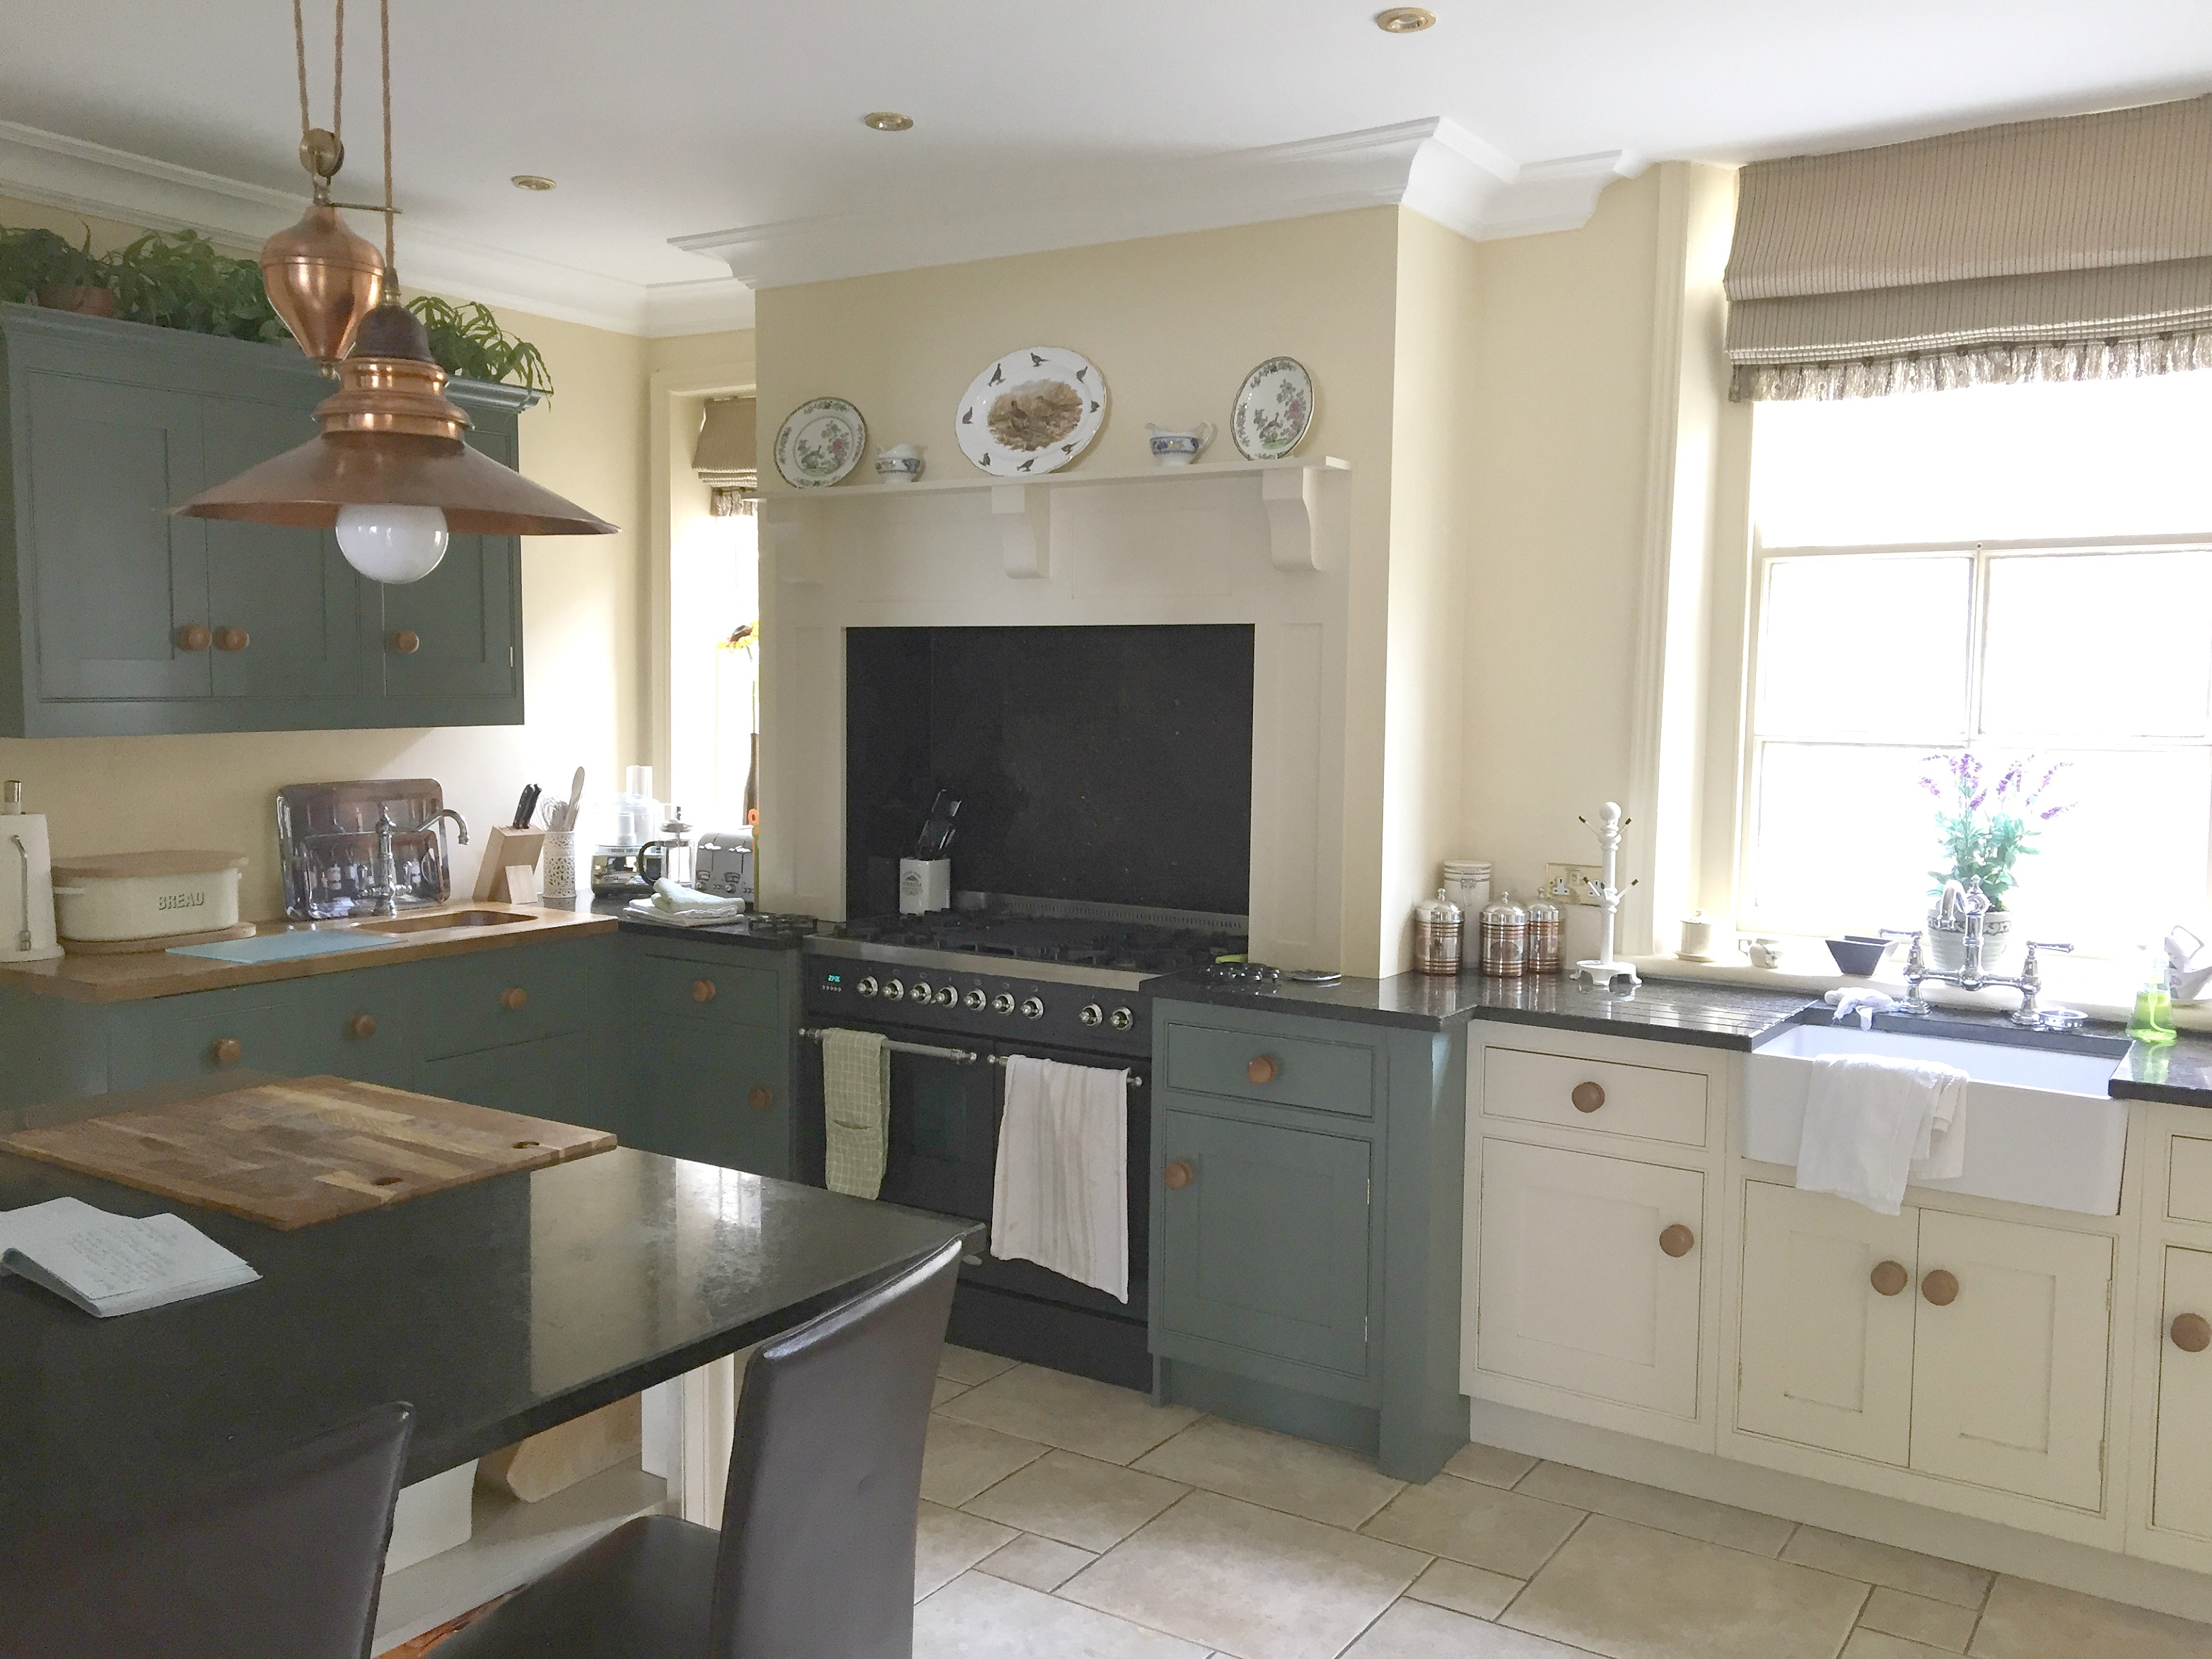 Kitchen of the house in Alfreton